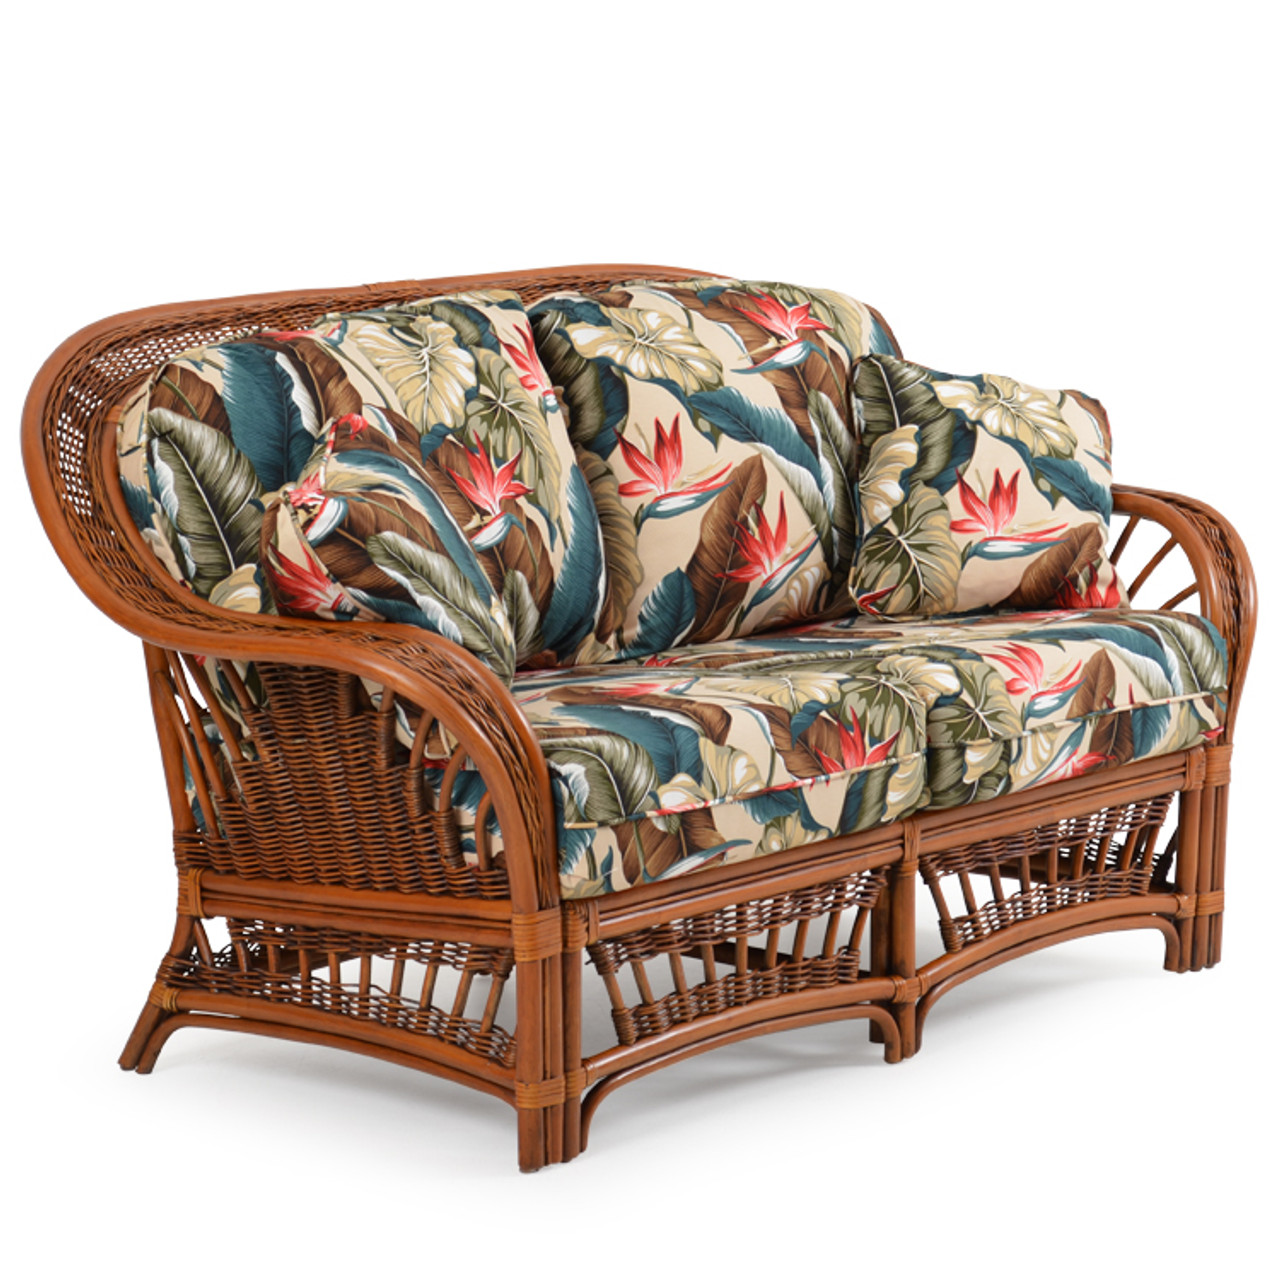 Bali Indoor Rattan Loveseat with Cushions - Leaders Casual ...